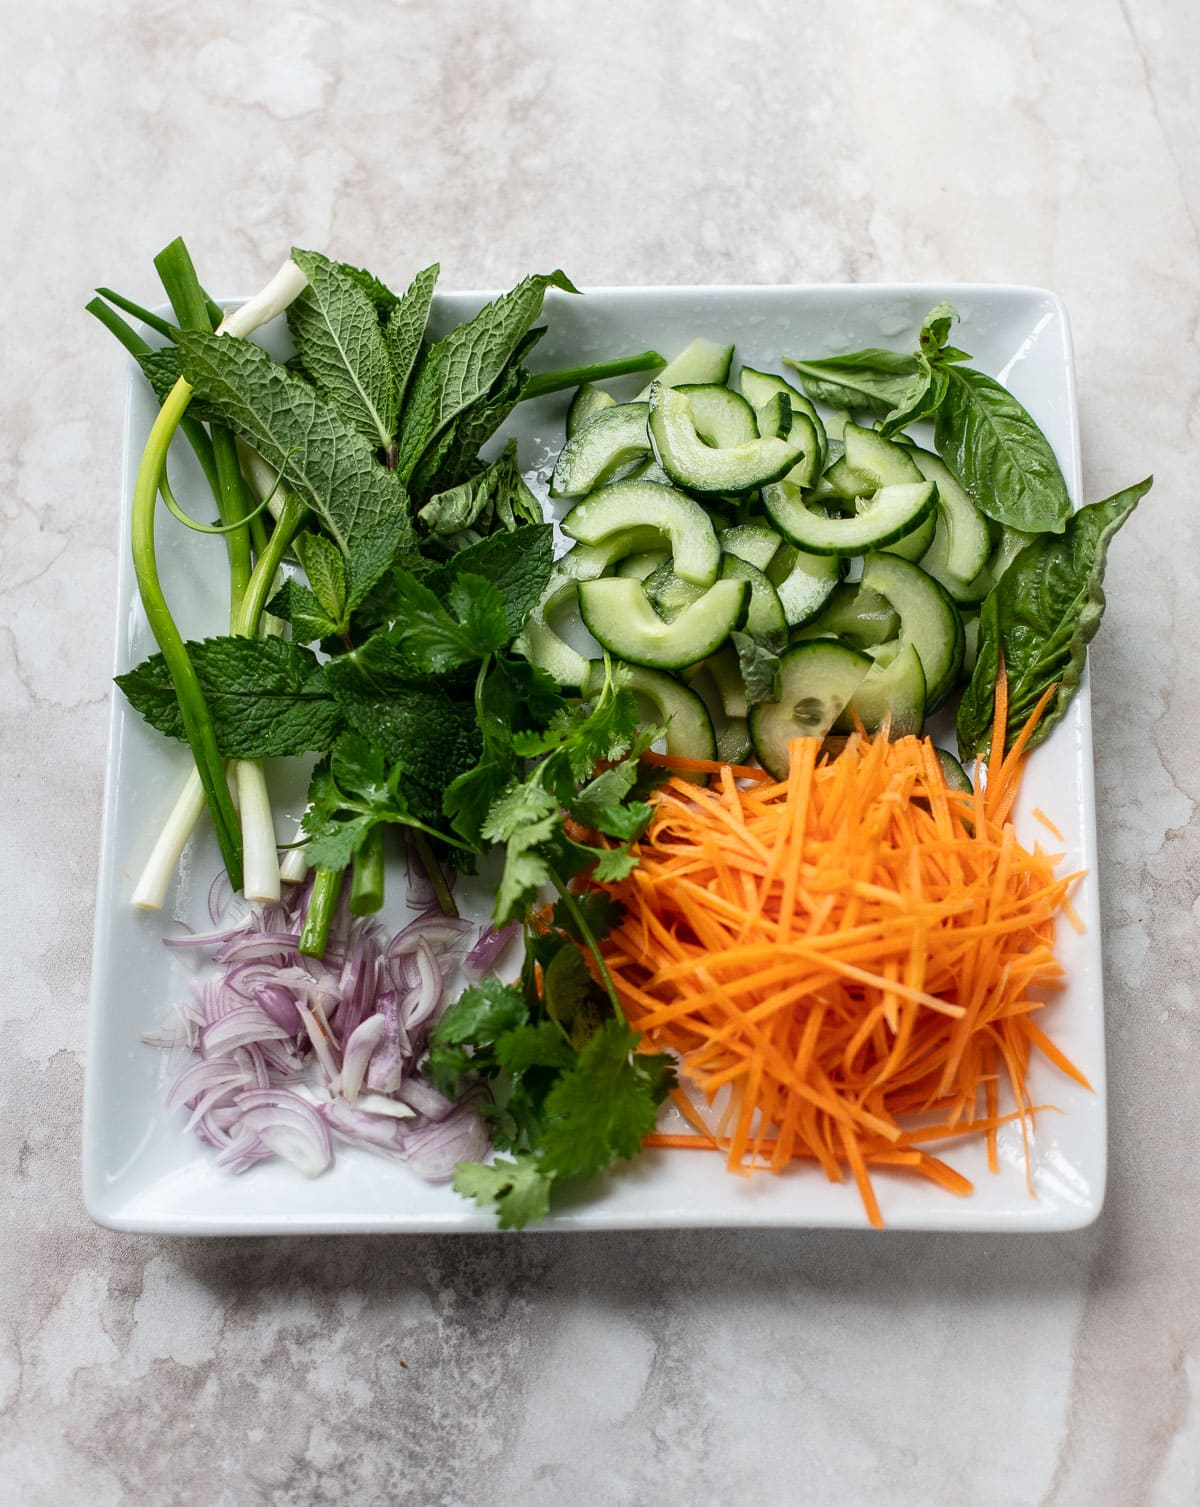 Ingredients for Vietnamese Shrimp Salad: Fresh mint, cilantro, green onion, carrot and cucumber.